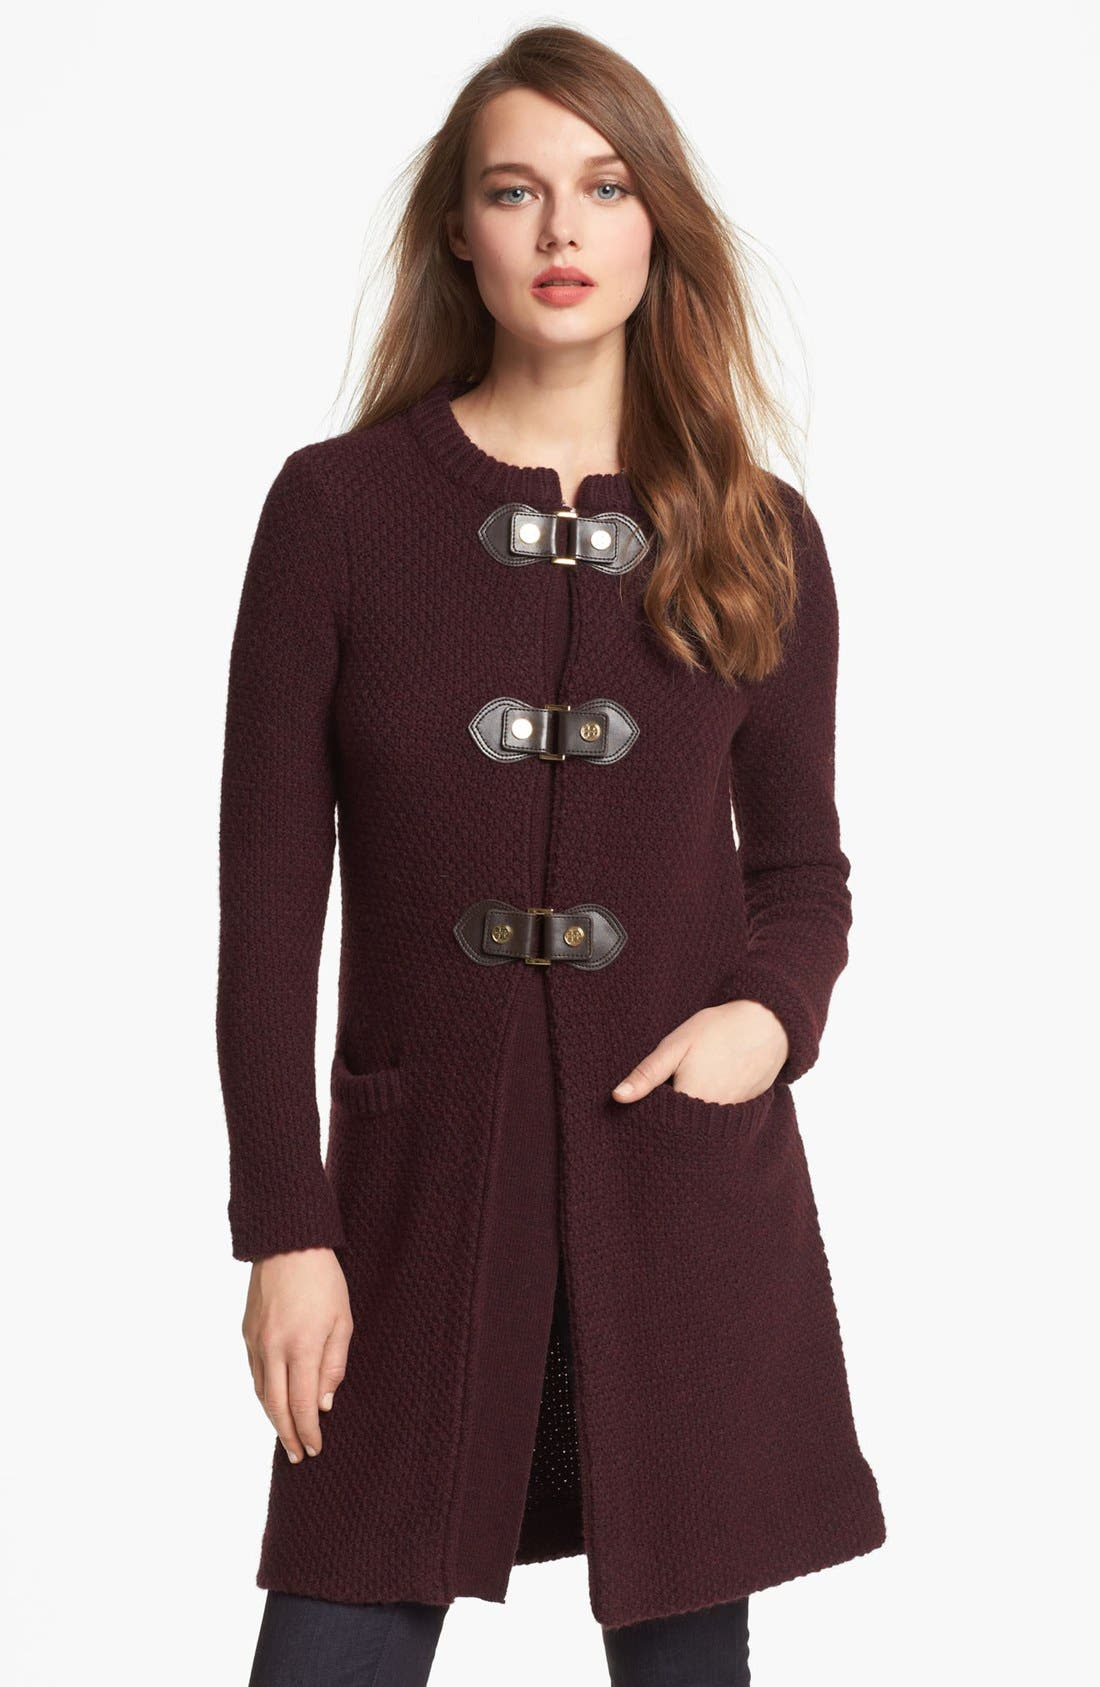 Alternate Image 1 Selected - Tory Burch 'Colette' Sweater Coat